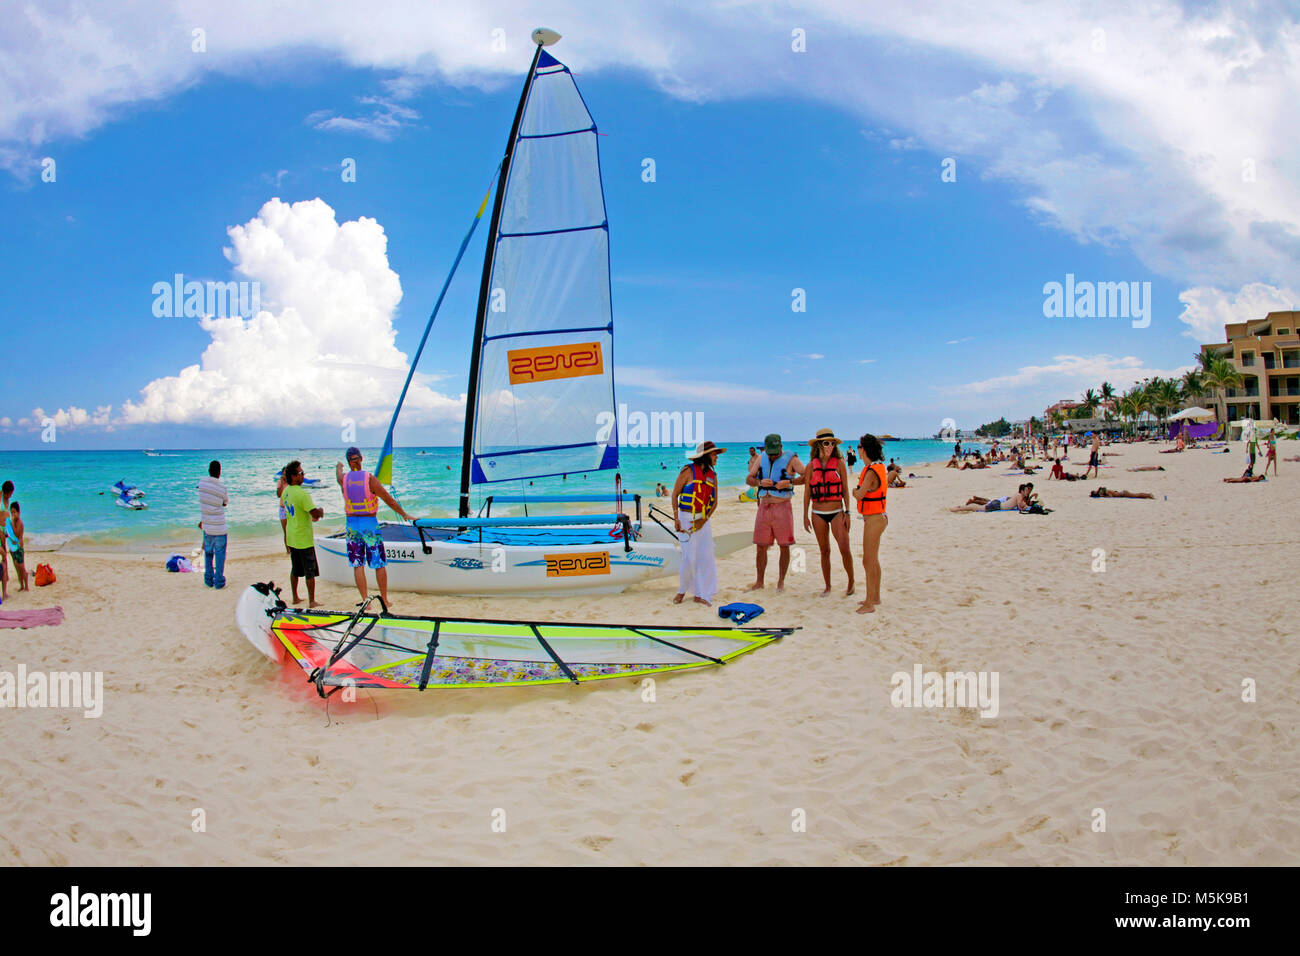 Wassersport am Strand von Playa del Carmen, Mexiko, Karibik | Watersport at the beach of Playa del Carmen, Mexico, - Stock Image